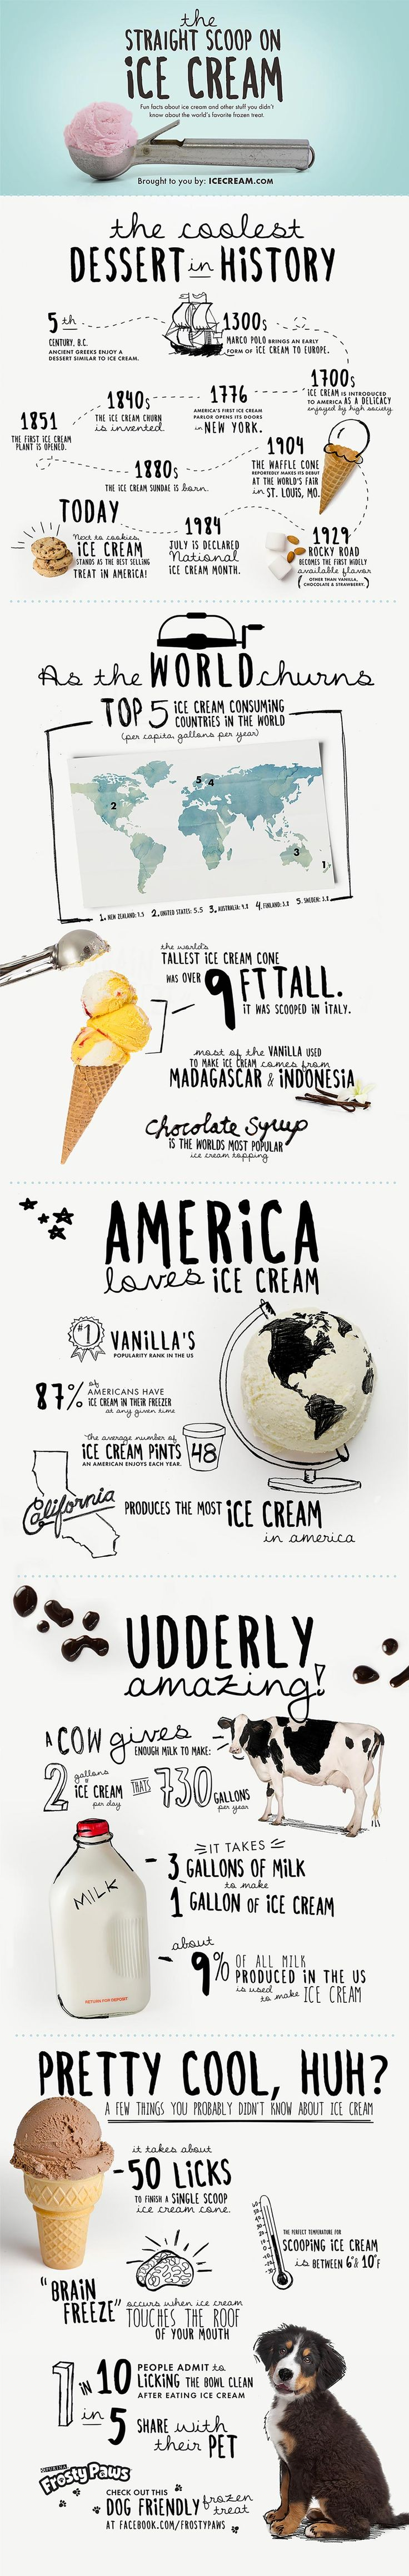 The Straight Scoop on Ice Cream: Fun facts about ice cream and other stuff you didn't know about the world's favorite frozen treat.